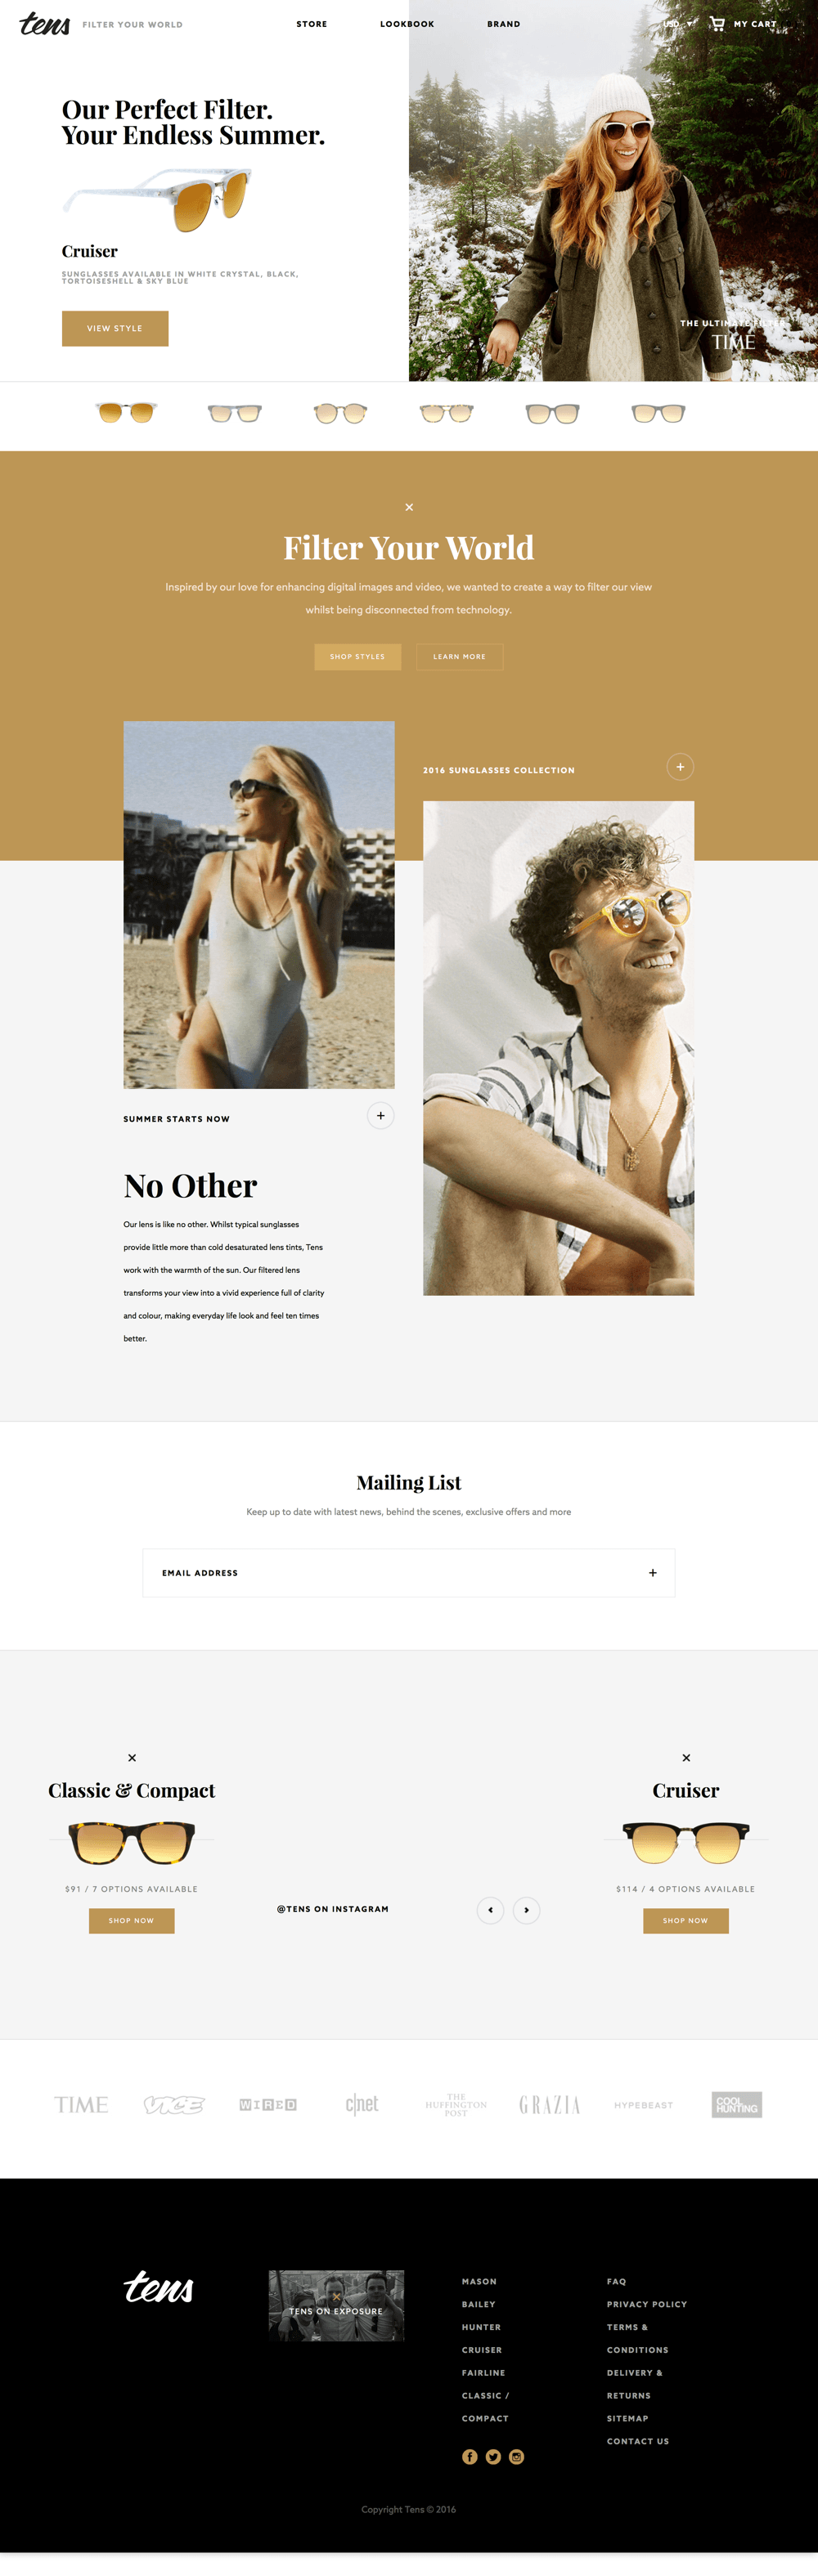 Tens Sunglasses: Filter Your World